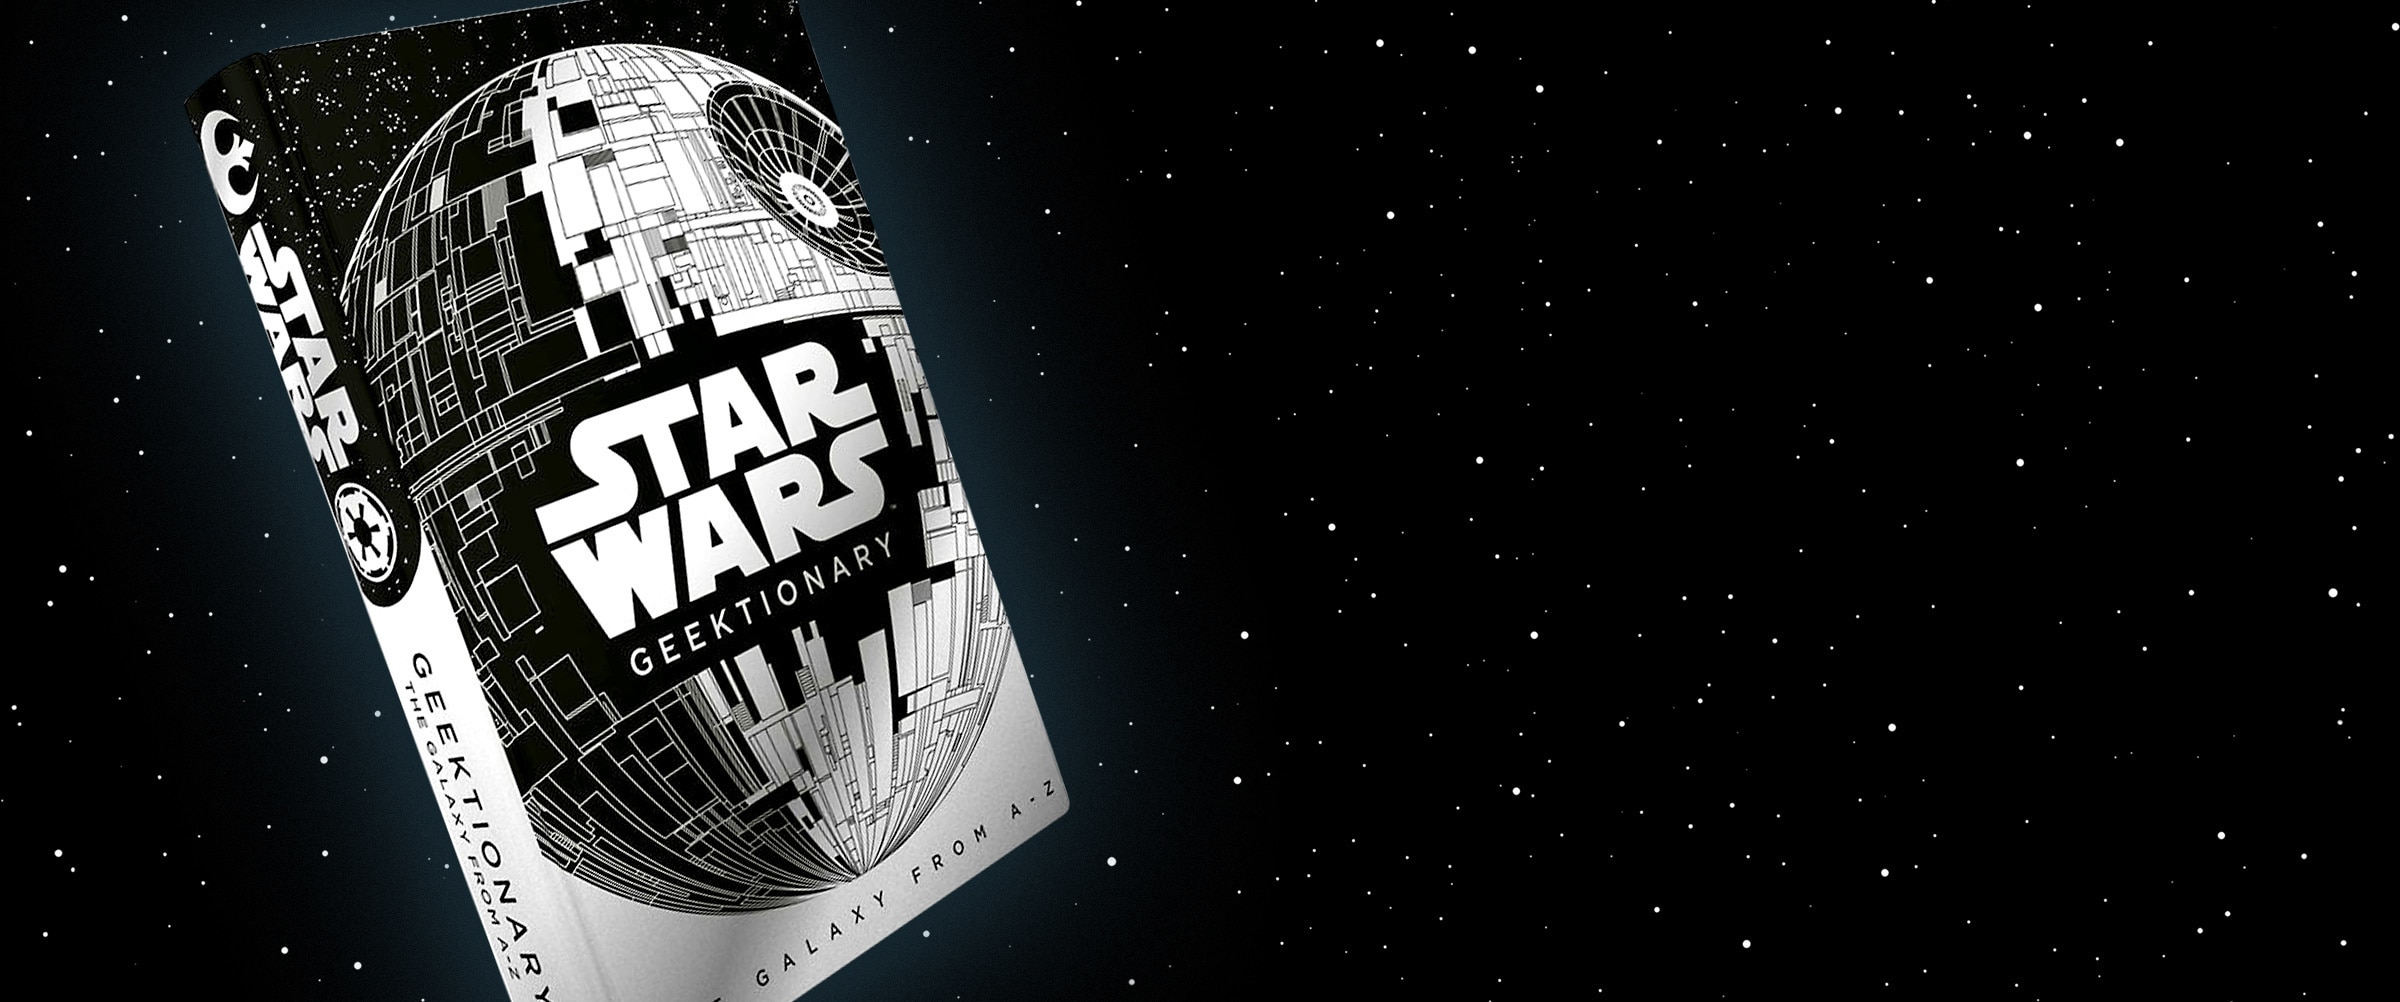 Shop | Shop Star Wars | Hero | Star Wars Dymocks